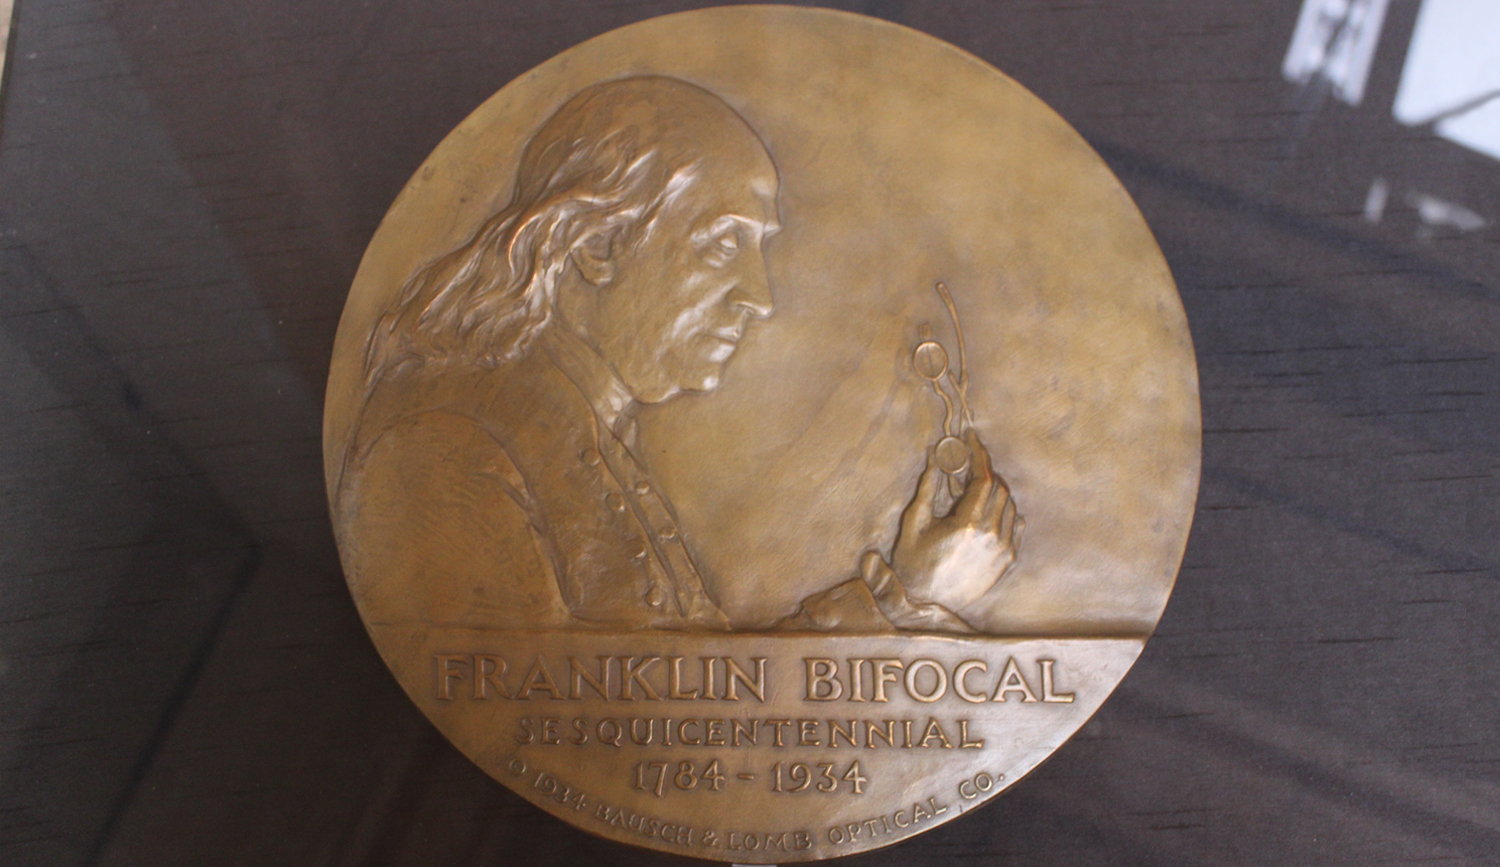 Commemorative Medallion (Plaque)